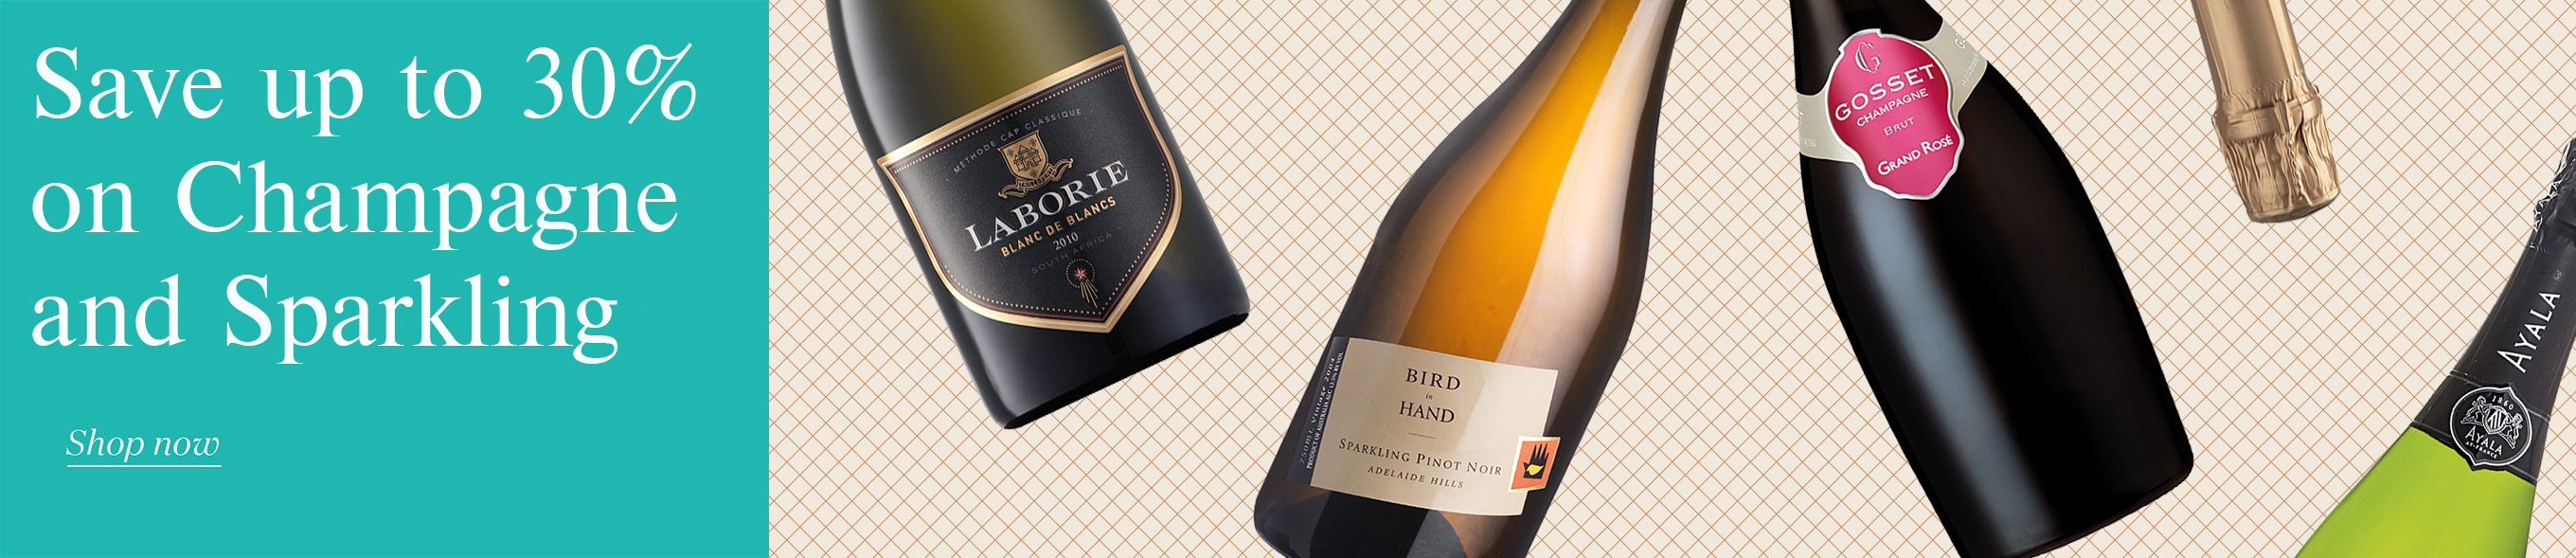 Save up to 30% on Champagne & Sparkling